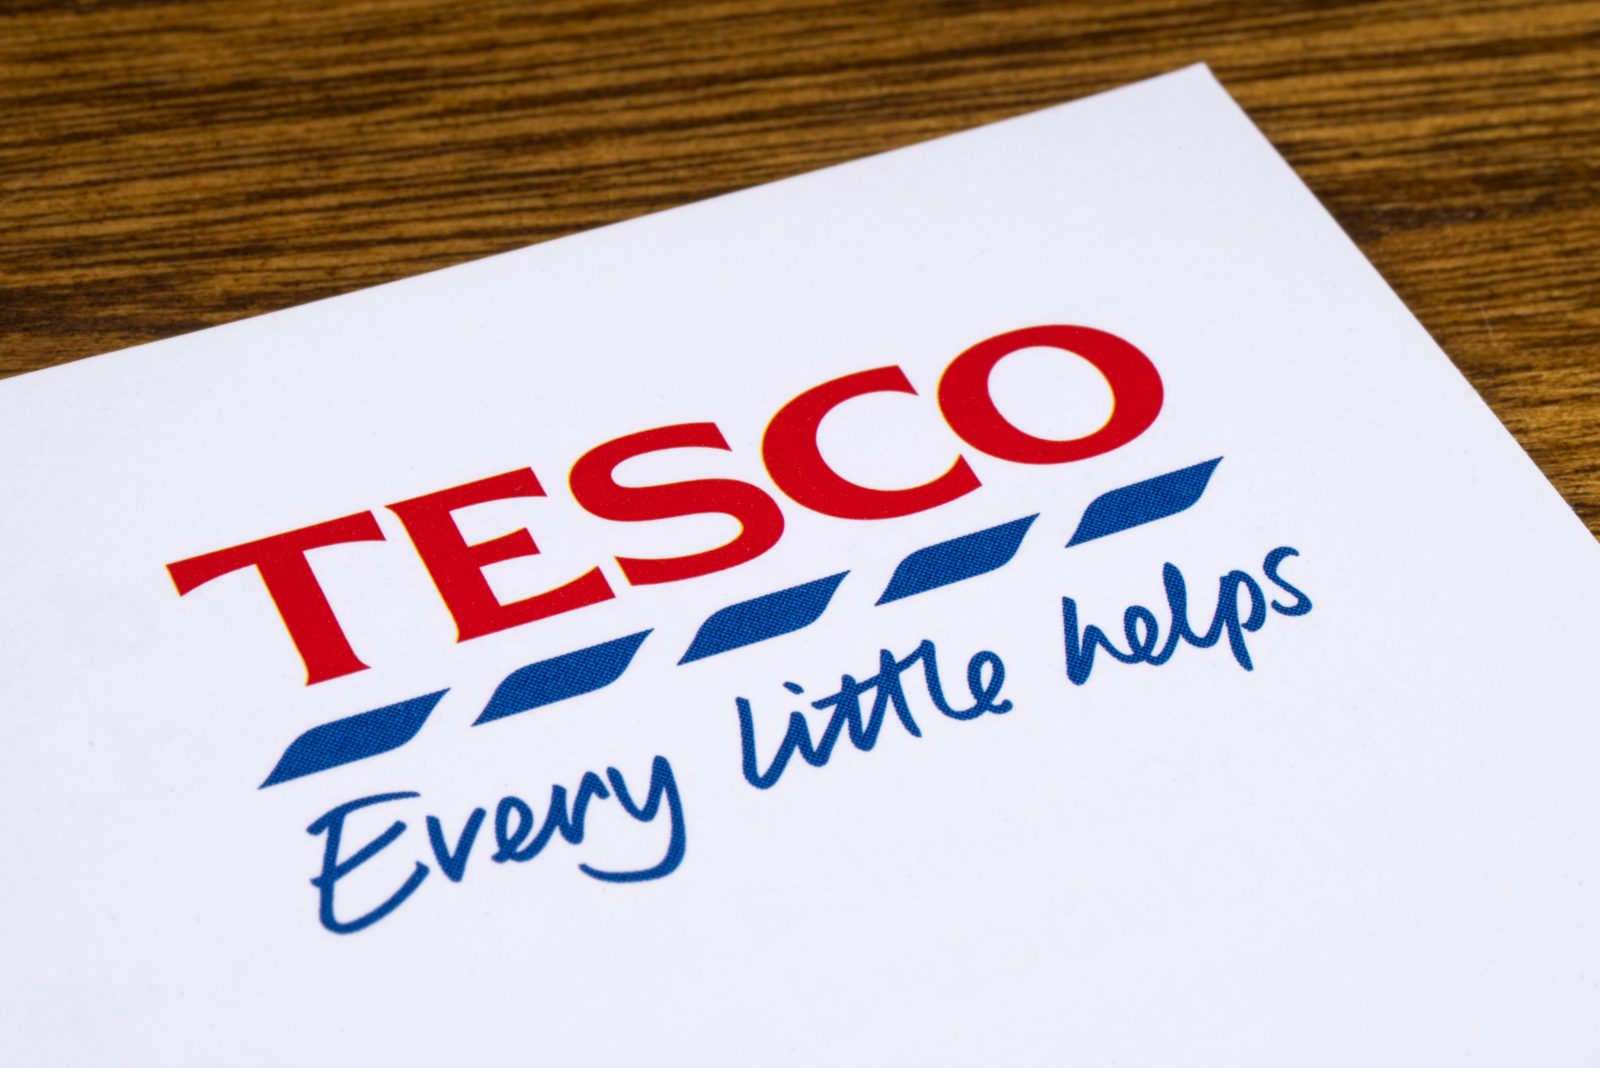 How to Cancel a Tesco Credit Card